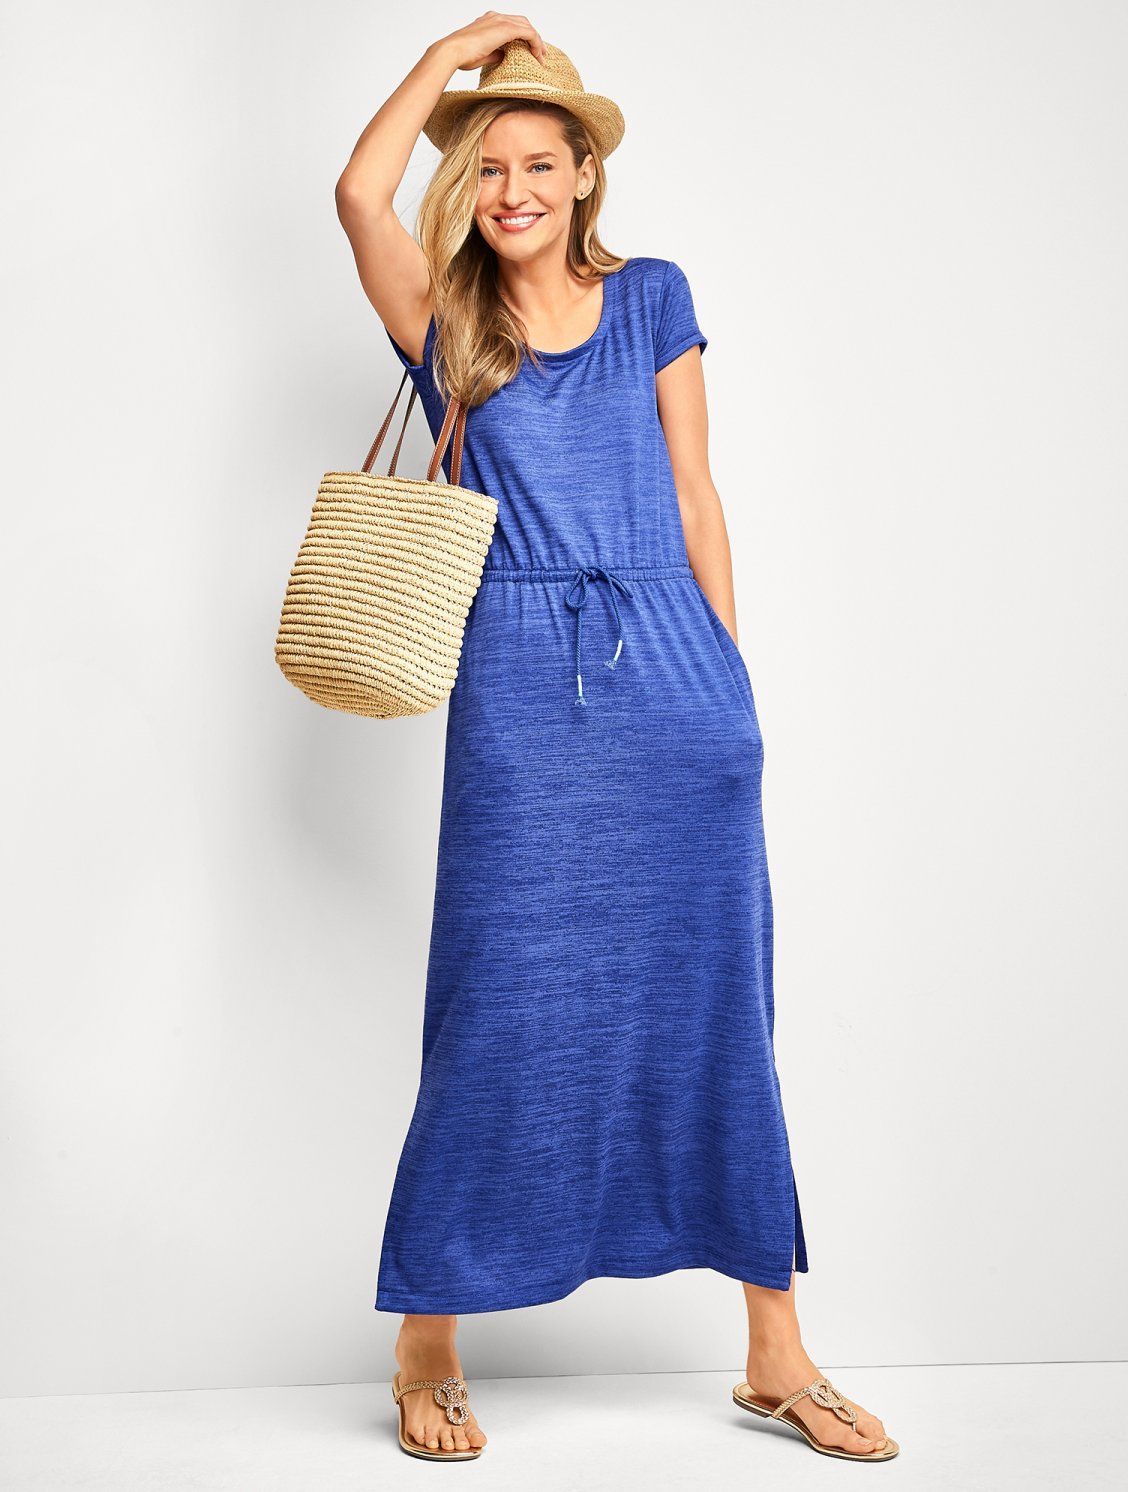 Easy Stylish And Comfortable Crafted From Our Feel Good Jersey Fabric This Maxi Dress Is Made For Life On T Drawstring Maxi Dress Maxi Dress Talbots Fashion [ 1492 x 1128 Pixel ]